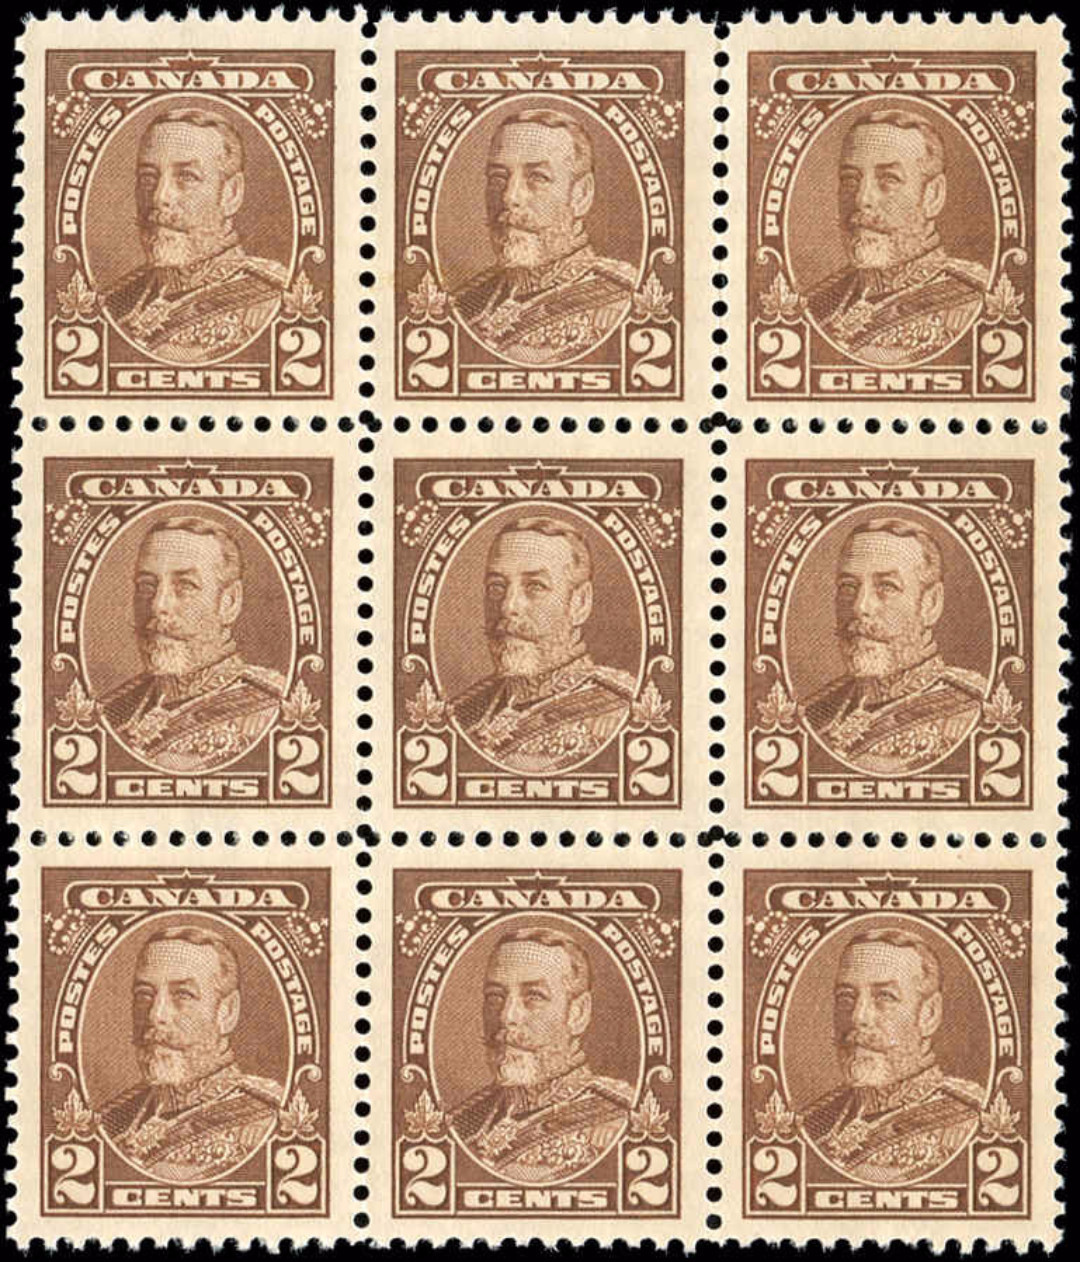 Canada #218, Pictorial Issue, VF, MNH